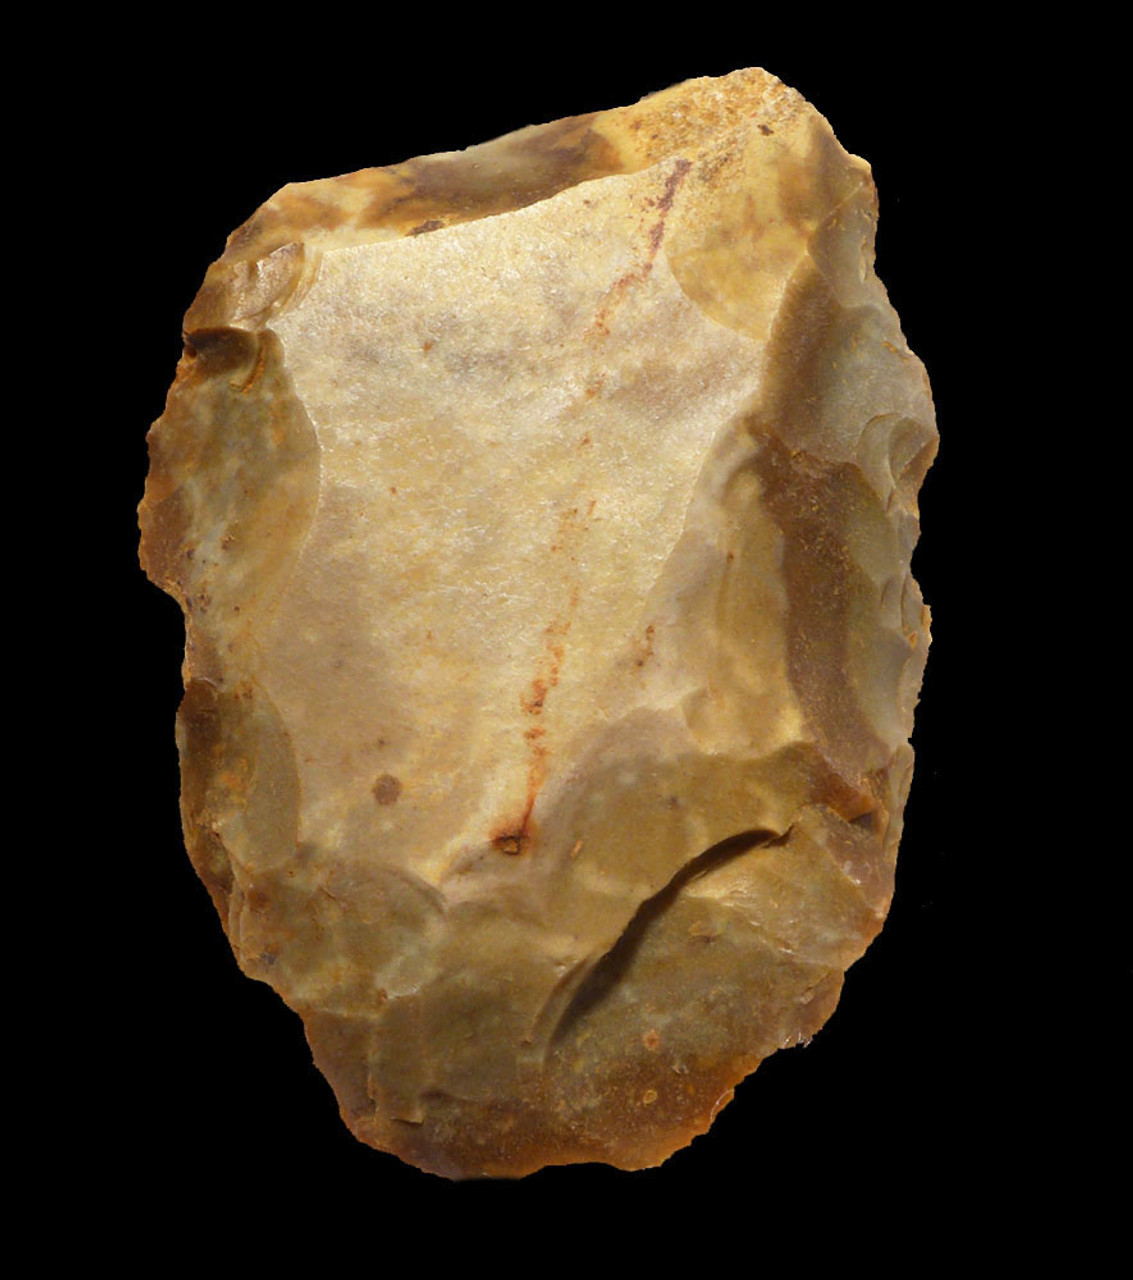 FINEST NEANDERTHAL MOUSTERIAN BIFACE HAND AXE FROM FRANCE WITH EXPERT CENTRIPETAL FLAKING  *M415